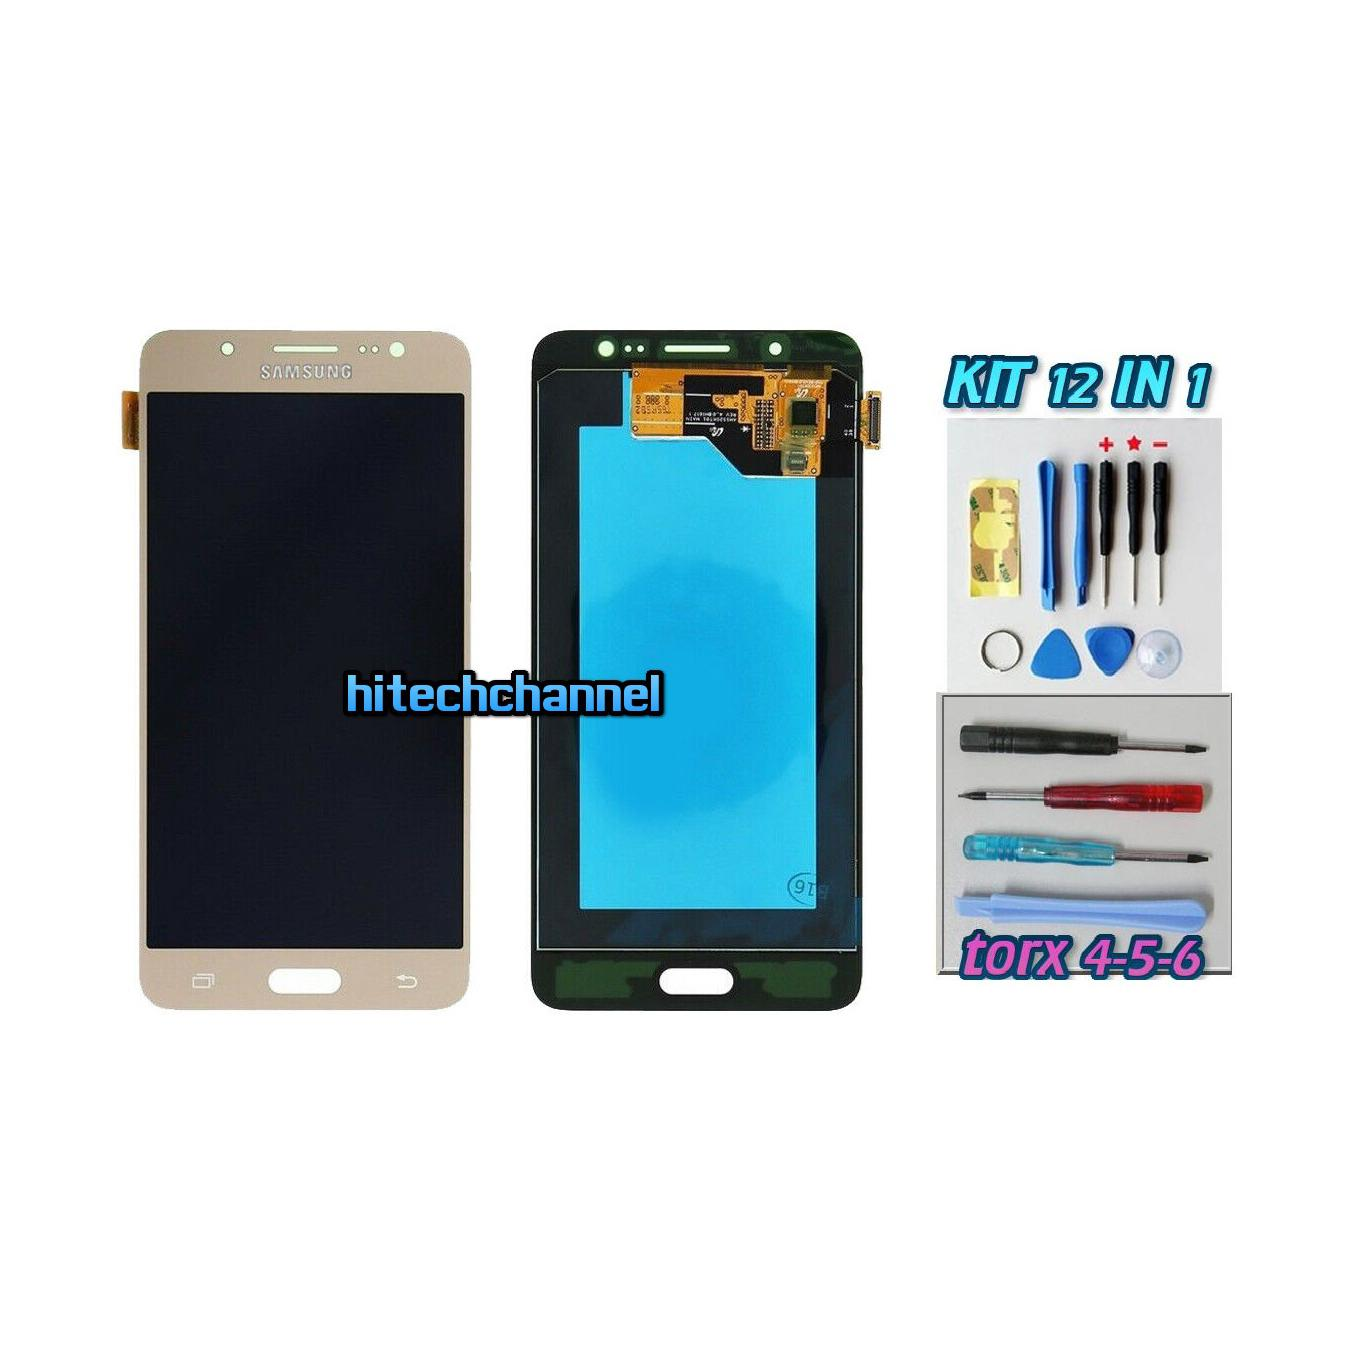 TOUCH SCREEN LCD DISPLAY ORO GOLD Samsung Galaxy J5 2016 SM-J510FN+kit 9 in 1 e biadesivo